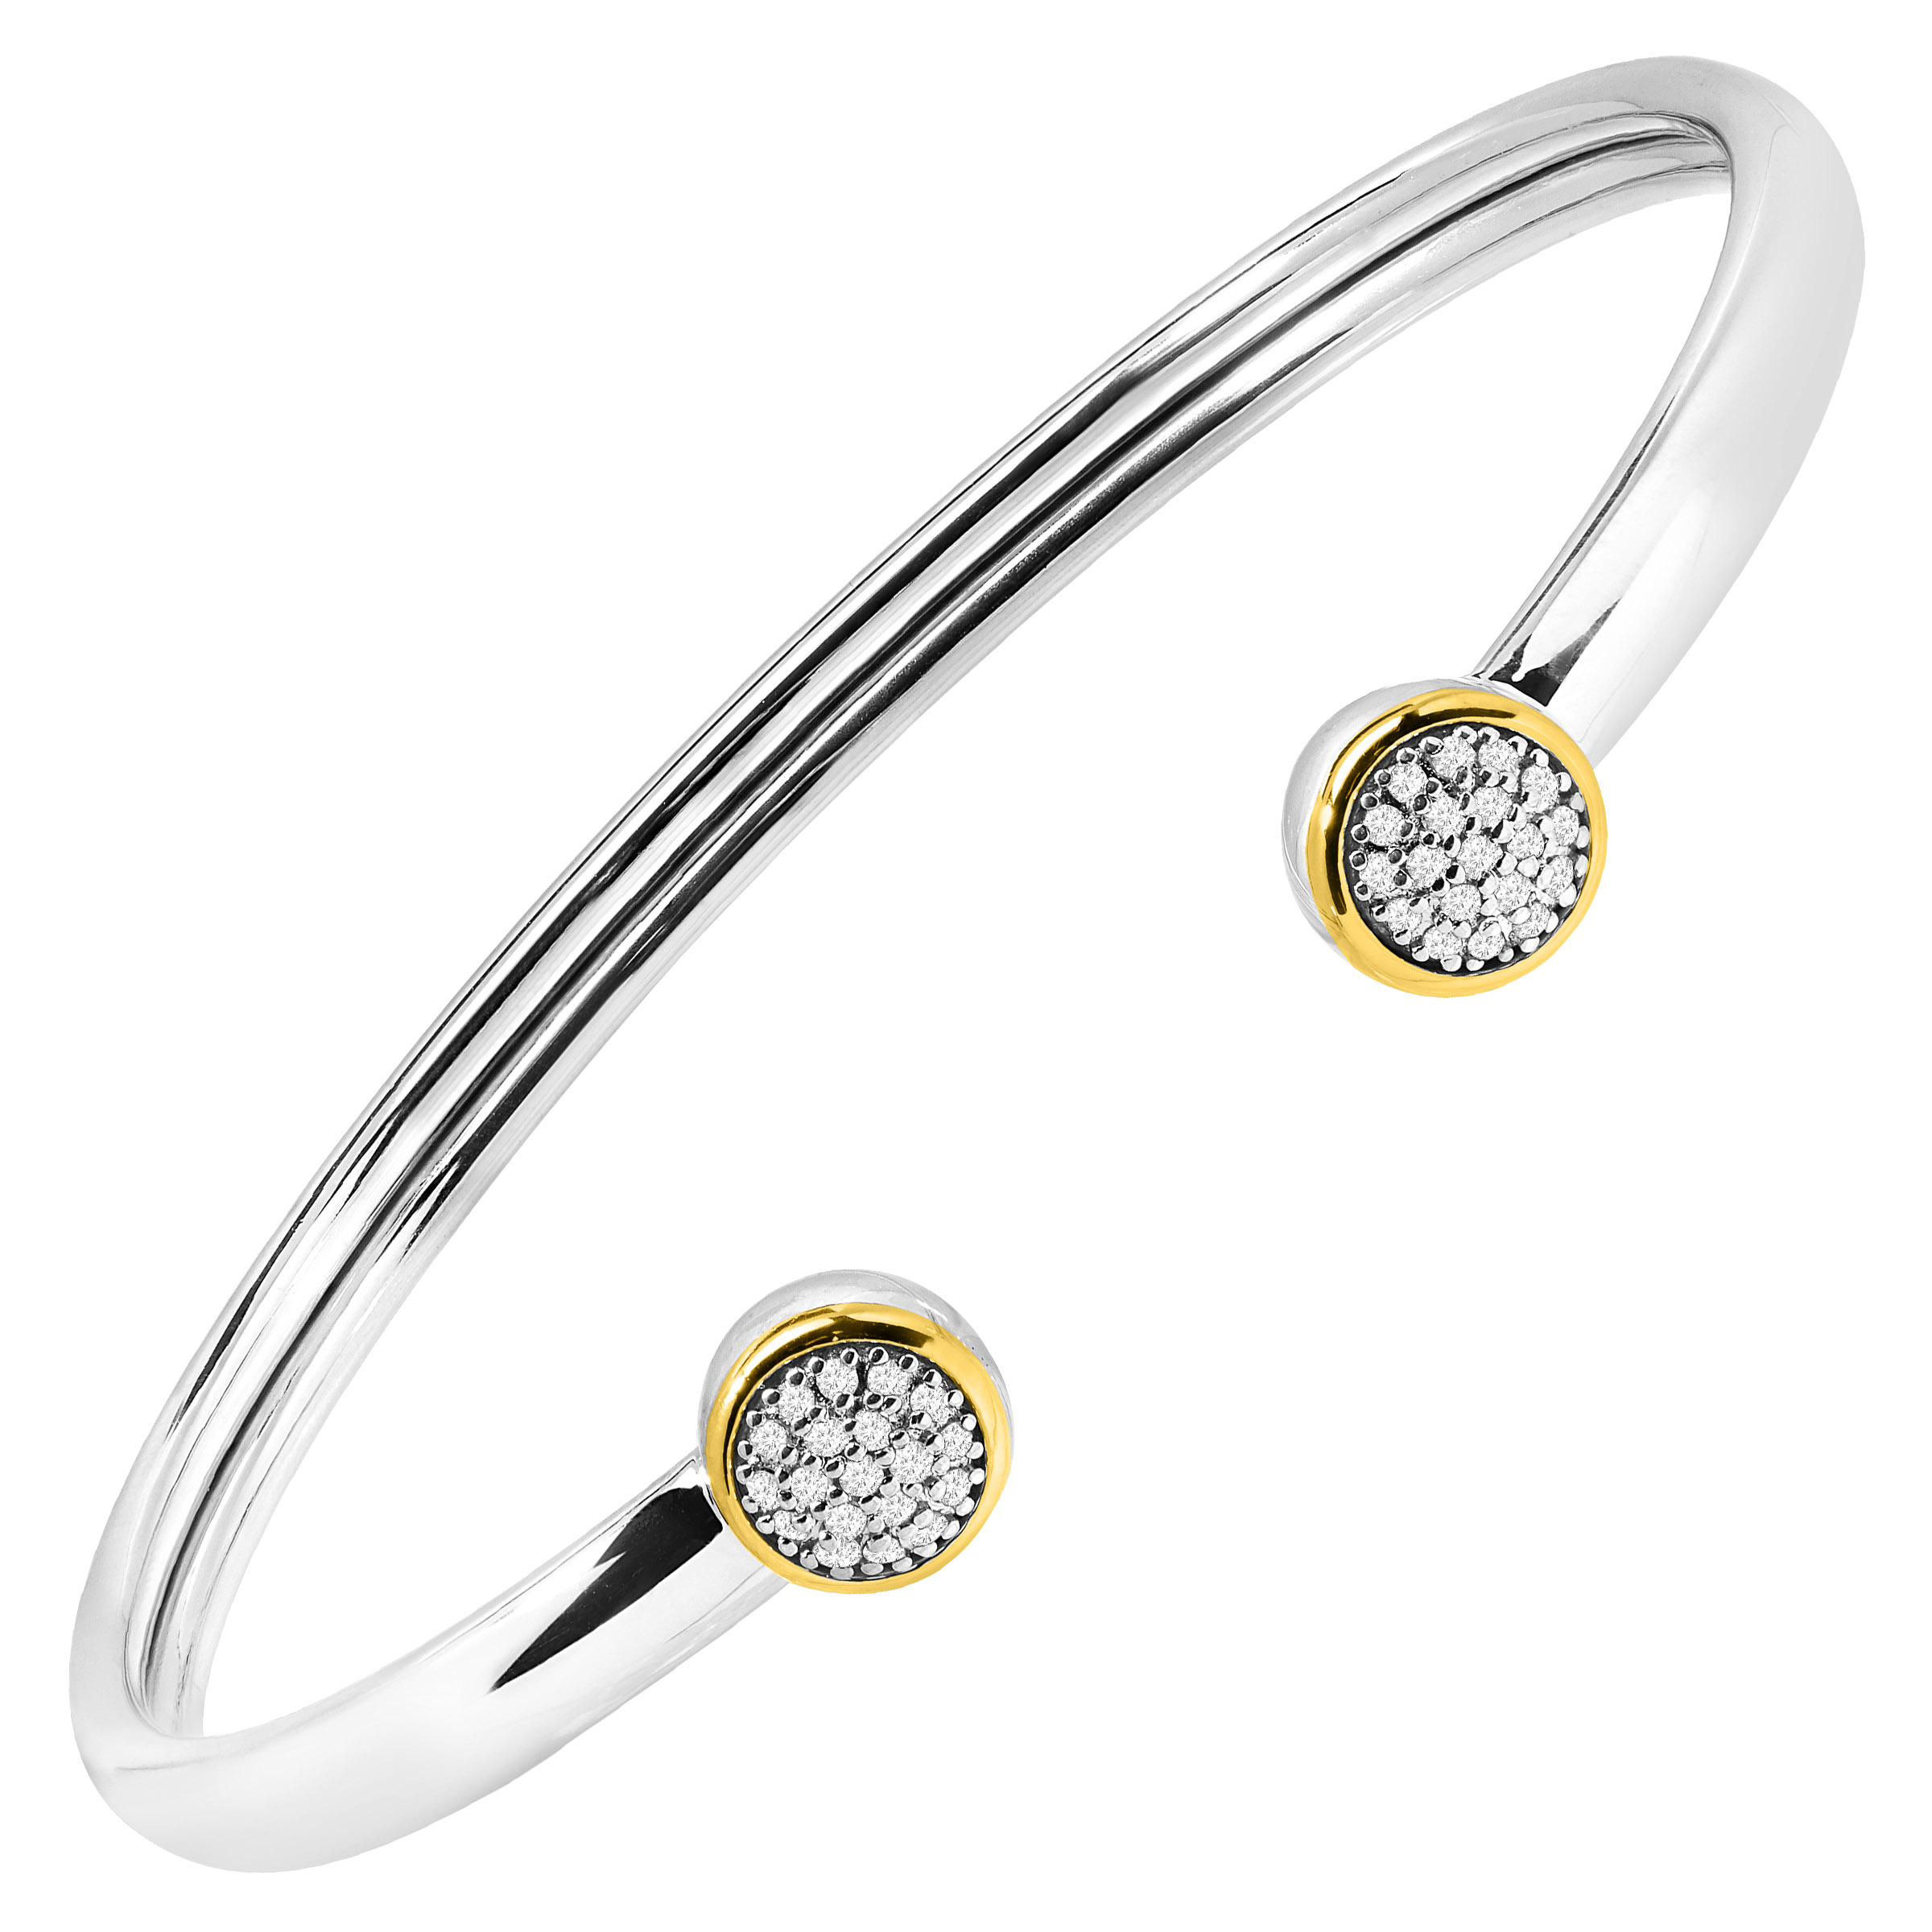 Duet 1 5 ct Diamond Circle Cuff Bracelet in Sterling Silver & 14kt Gold by Richline Group